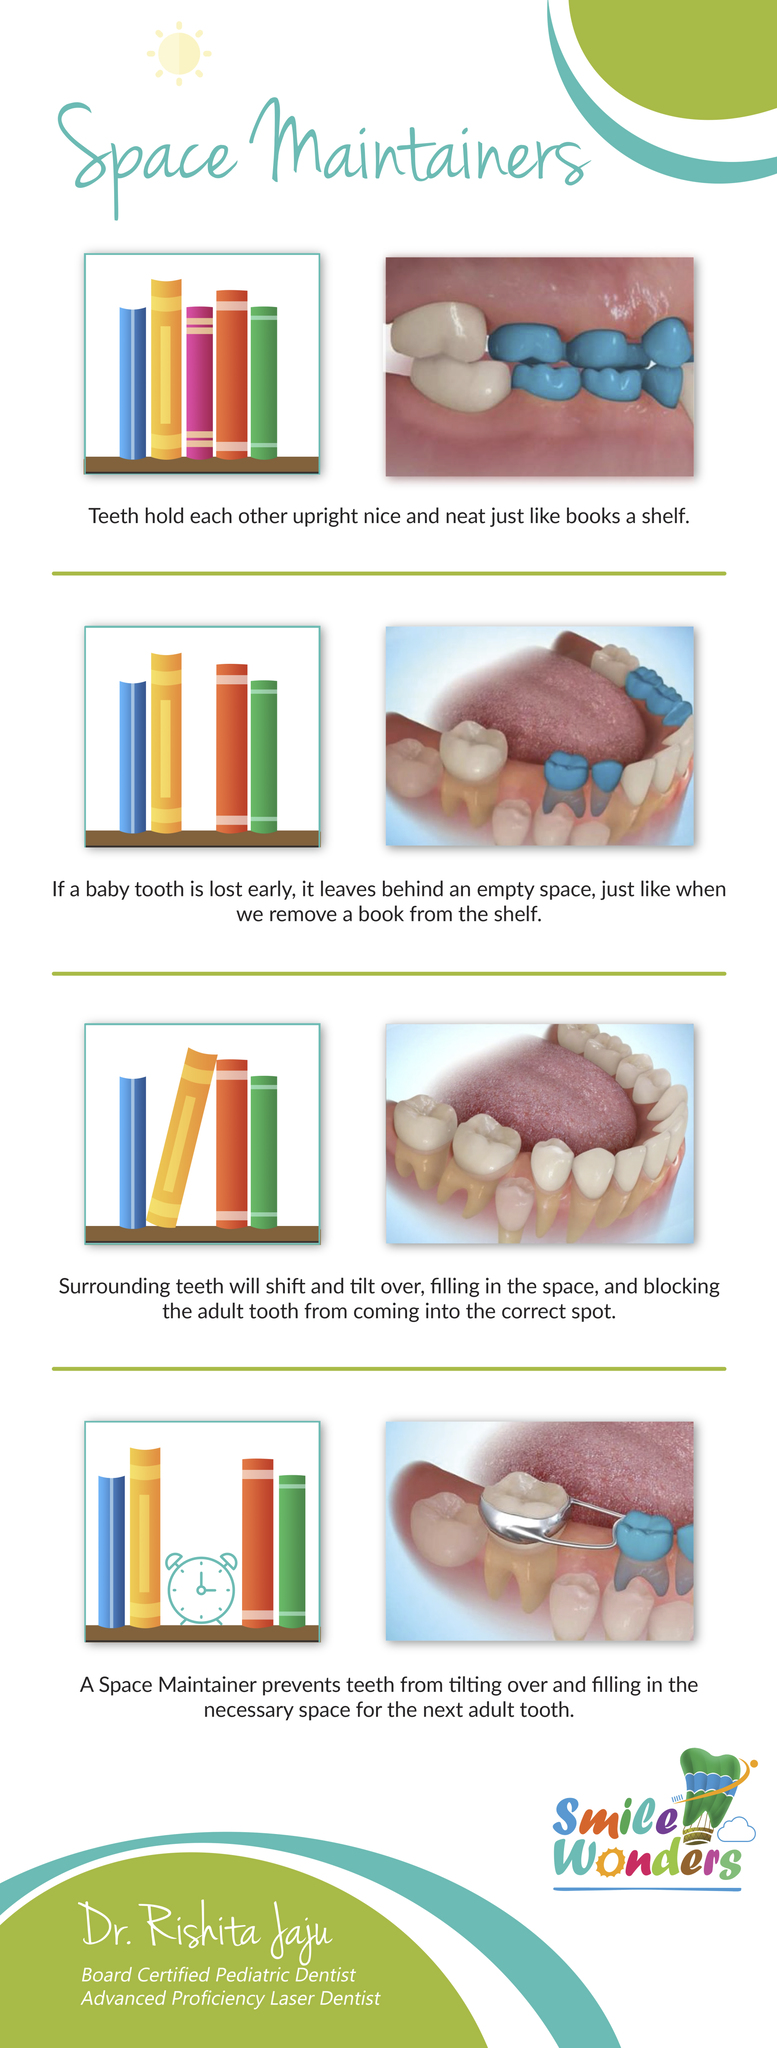 Pediatric dental services smile wonders pediatric dentist in the permanent tooth comes in to fill it this appliance will help your childs bite develop properly and hopefully avoid the need for braces later on solutioingenieria Gallery